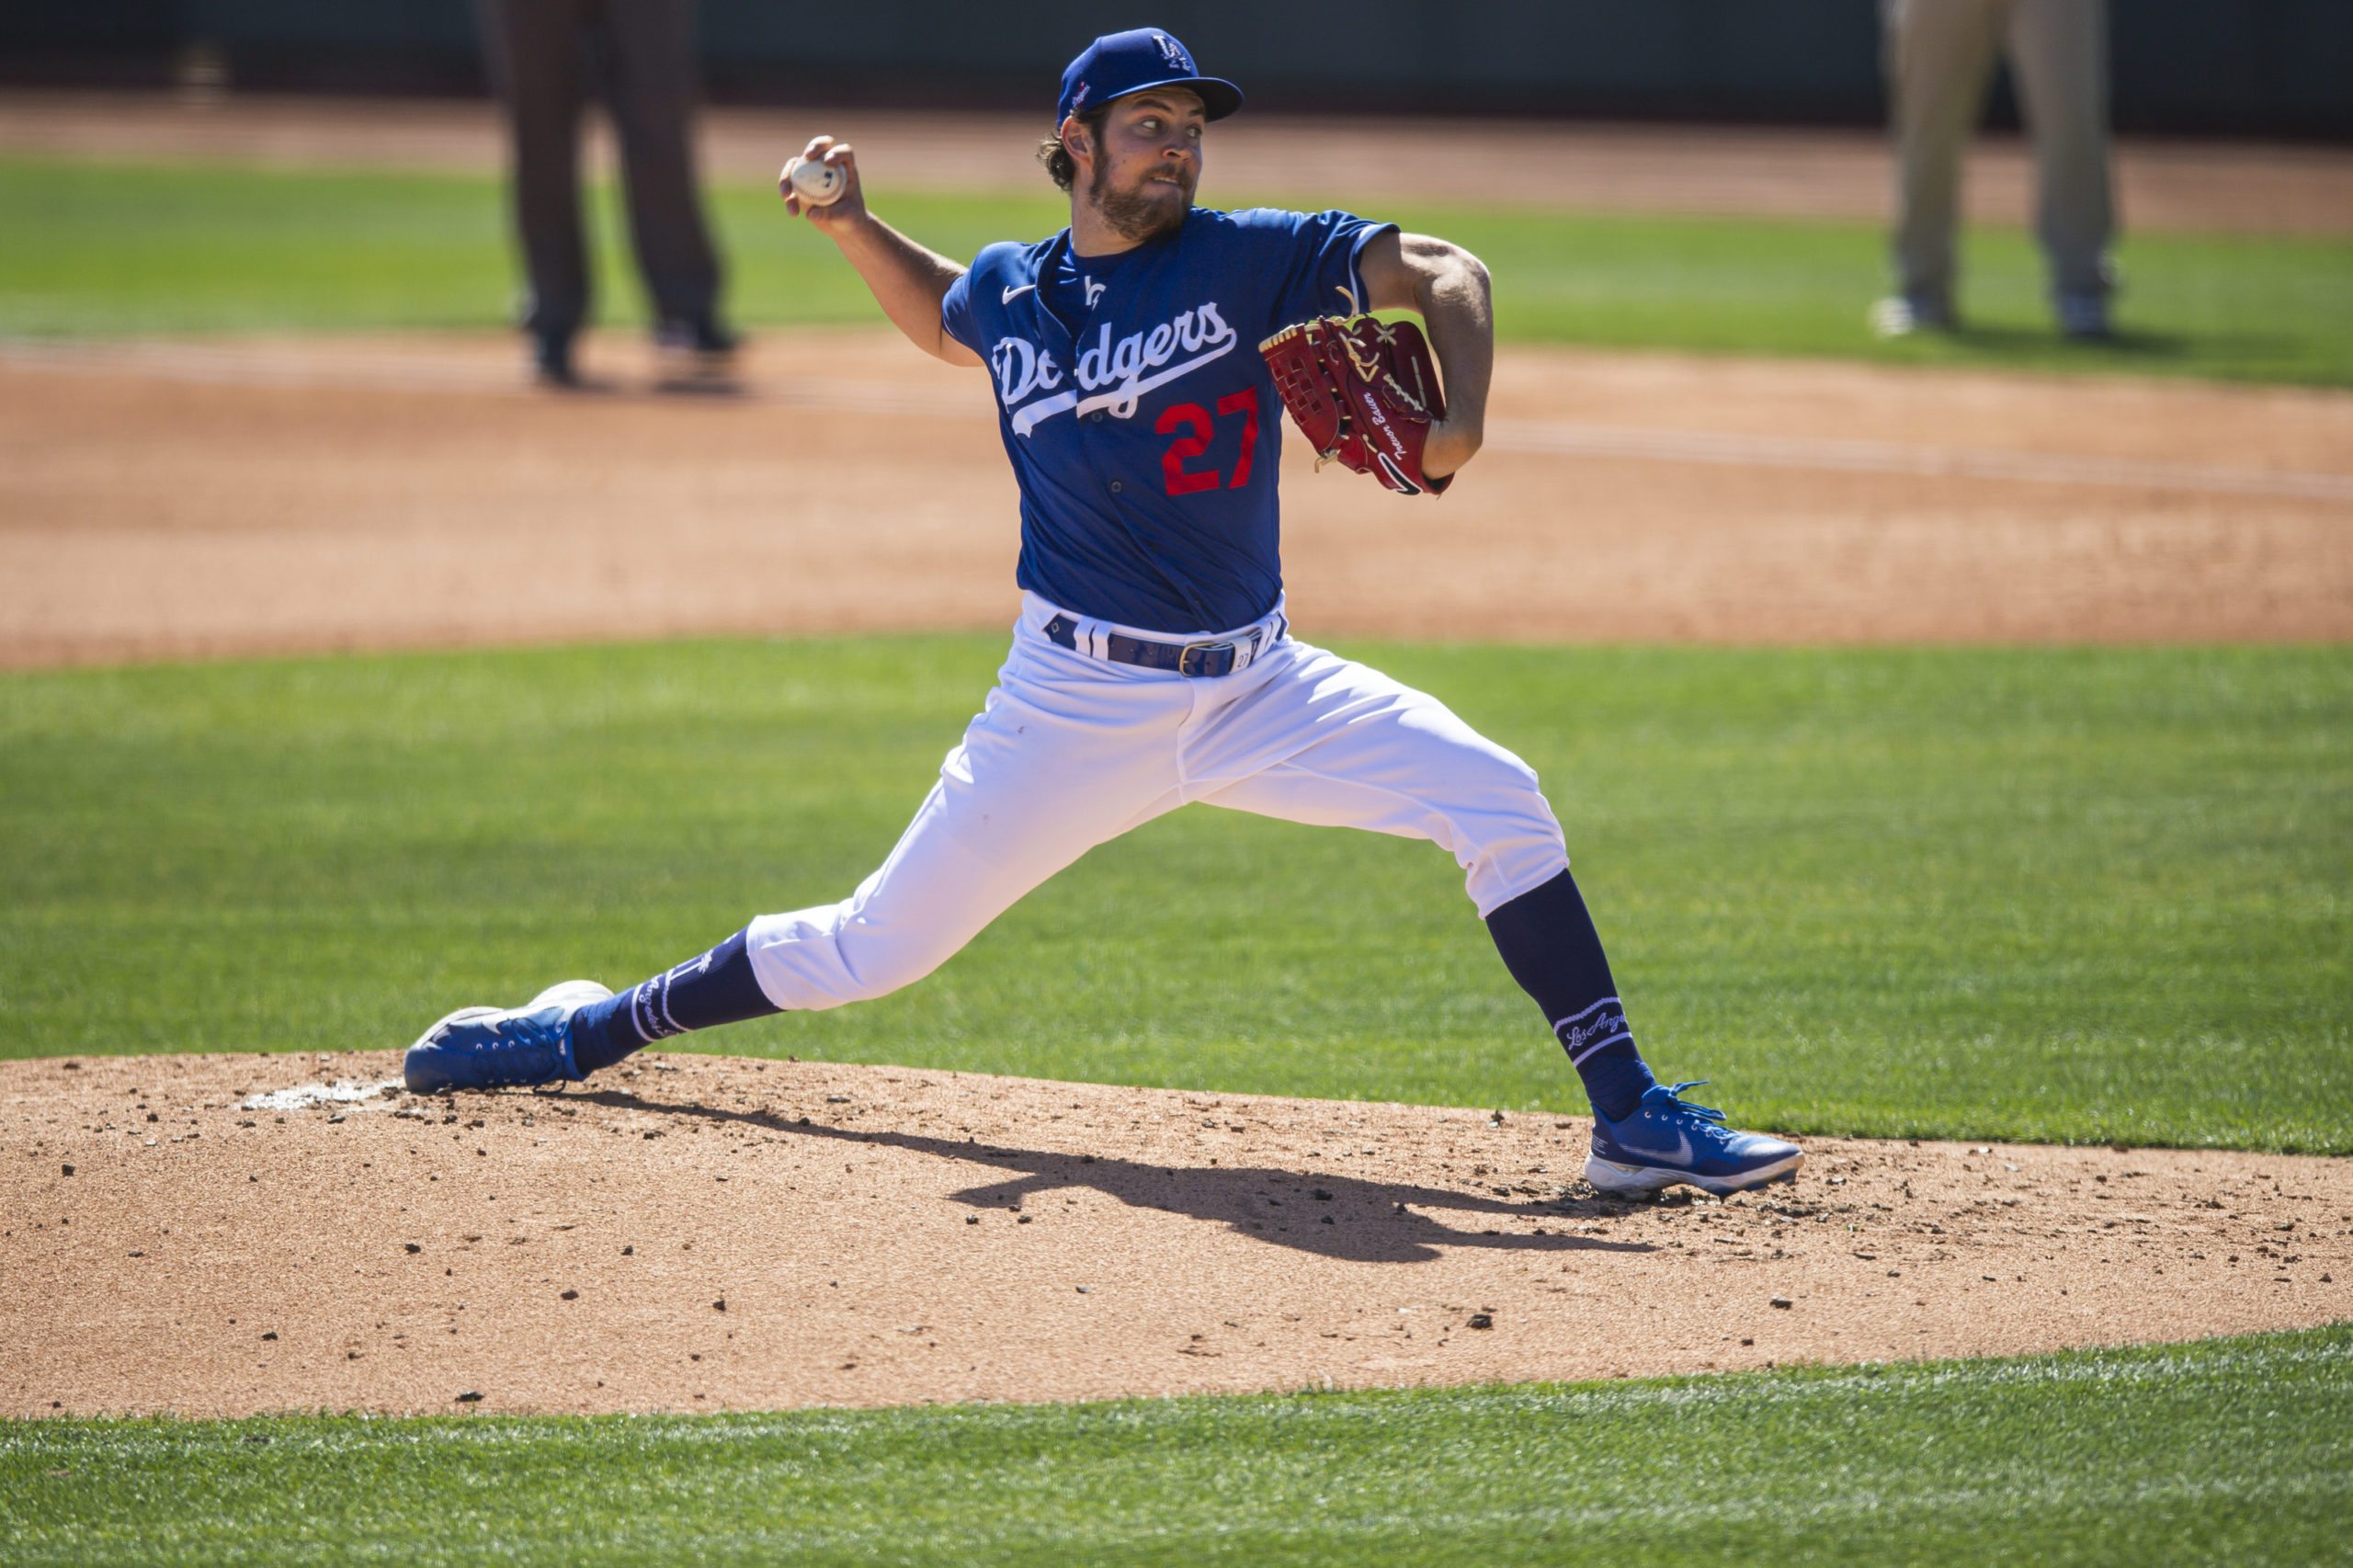 Bauer of the Dodgers are still favored